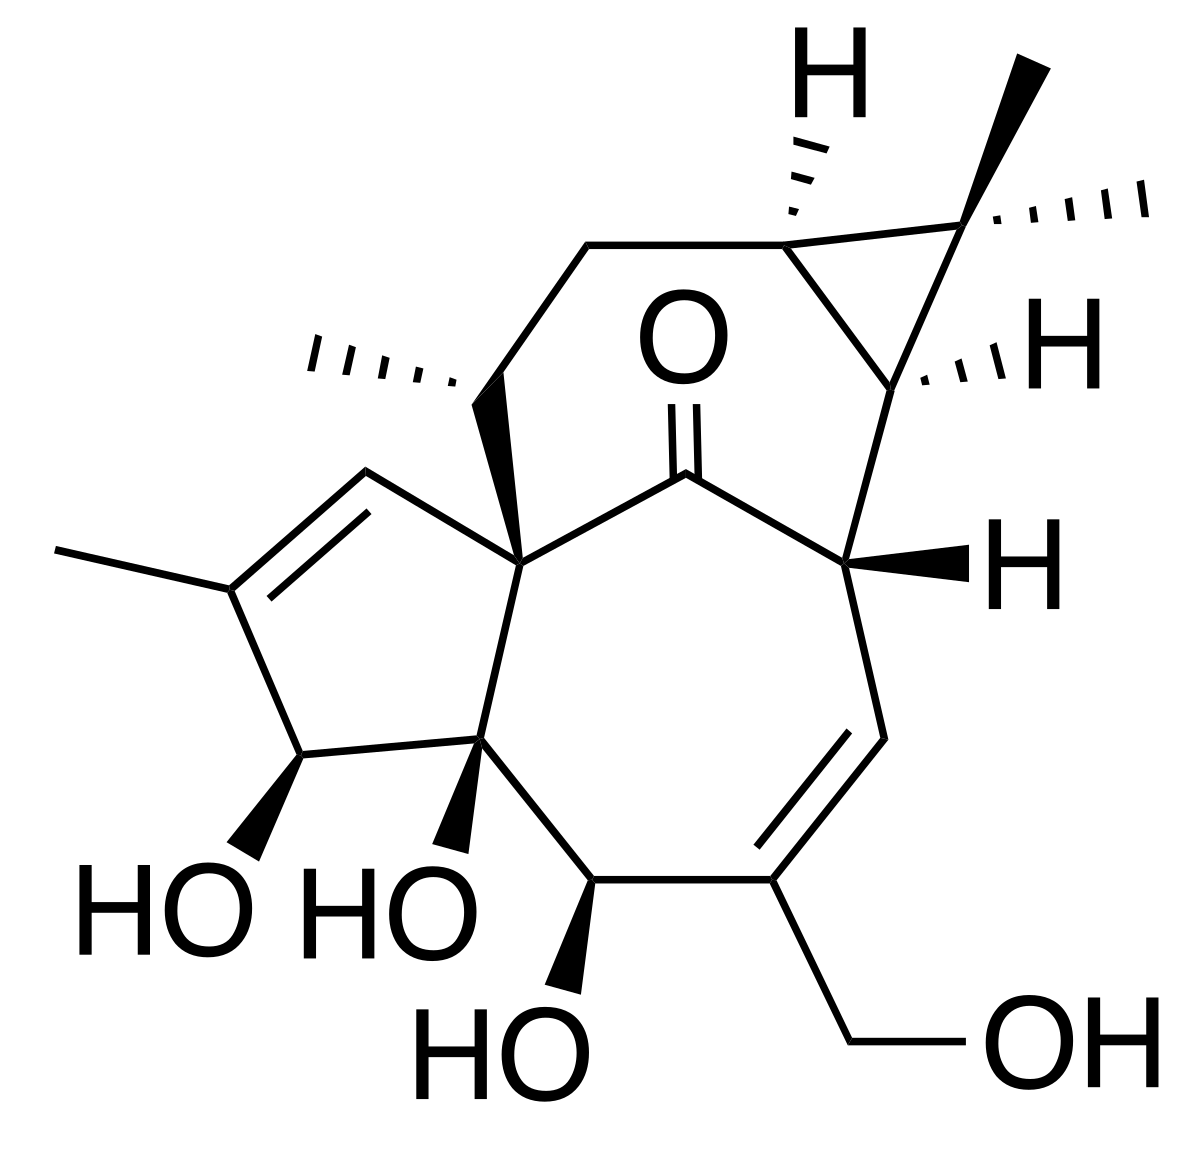 This is the image which is related to cyclic compound